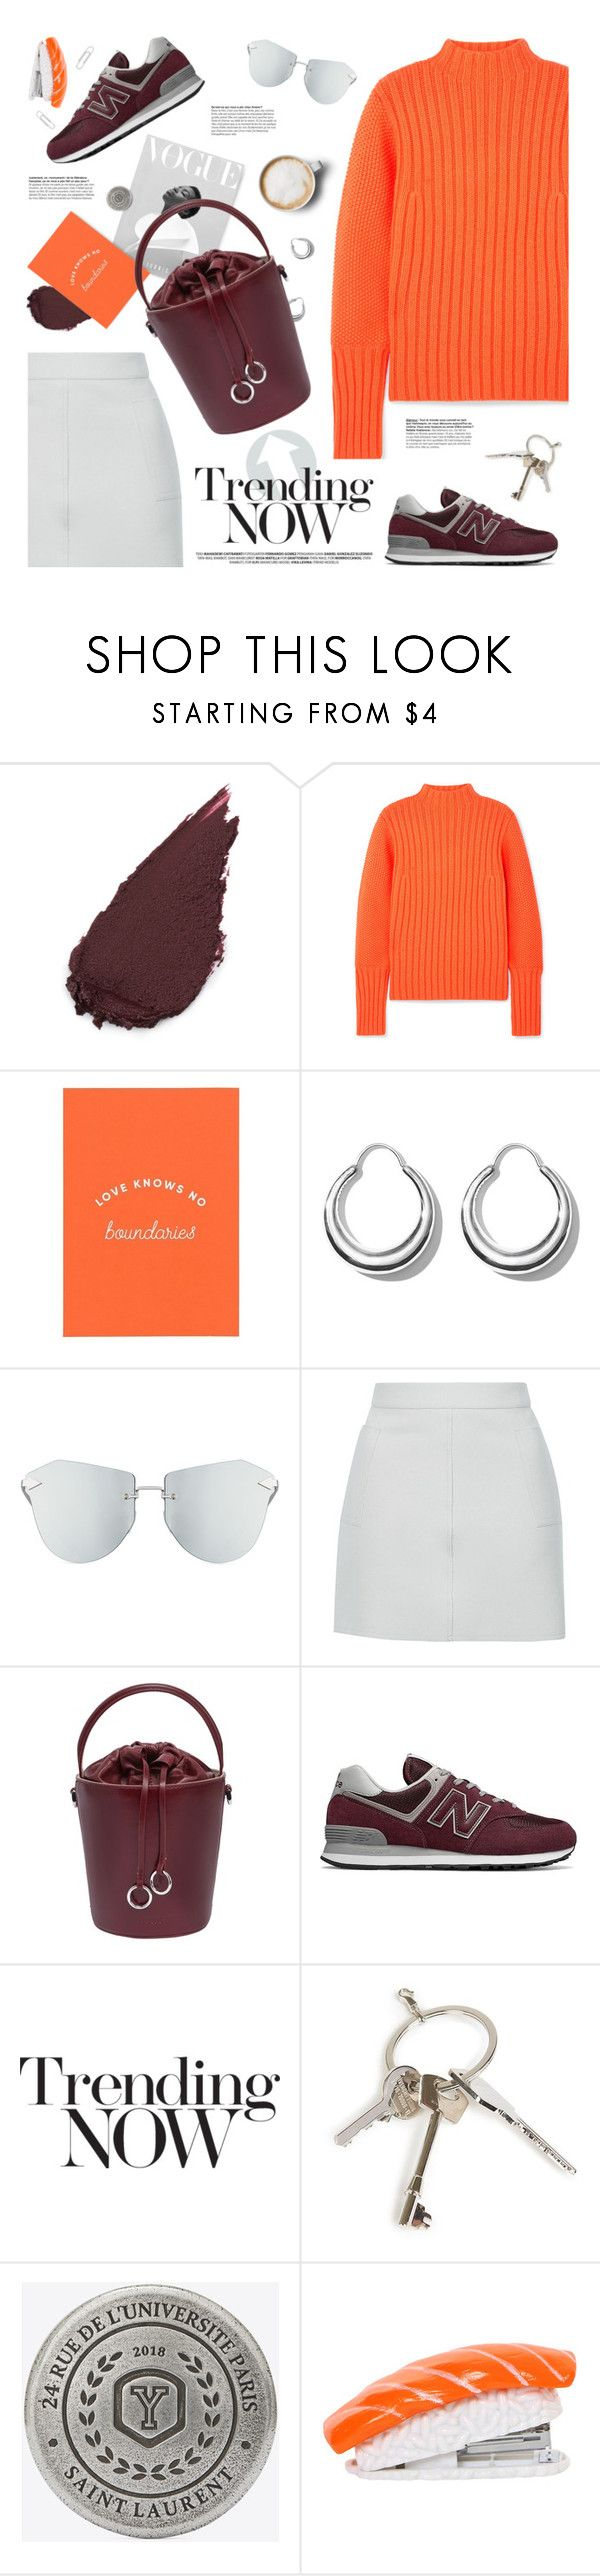 """""""5 days left to join (view description)"""" by jesuisunlapin ❤ liked on Polyvore featuring Victoria, Victoria Beckham, All Blues, Karen Walker, Topshop, Cafuné, New Balance, Givenchy, Yves Saint Laurent, Cufflinks, Inc. and Caffé"""